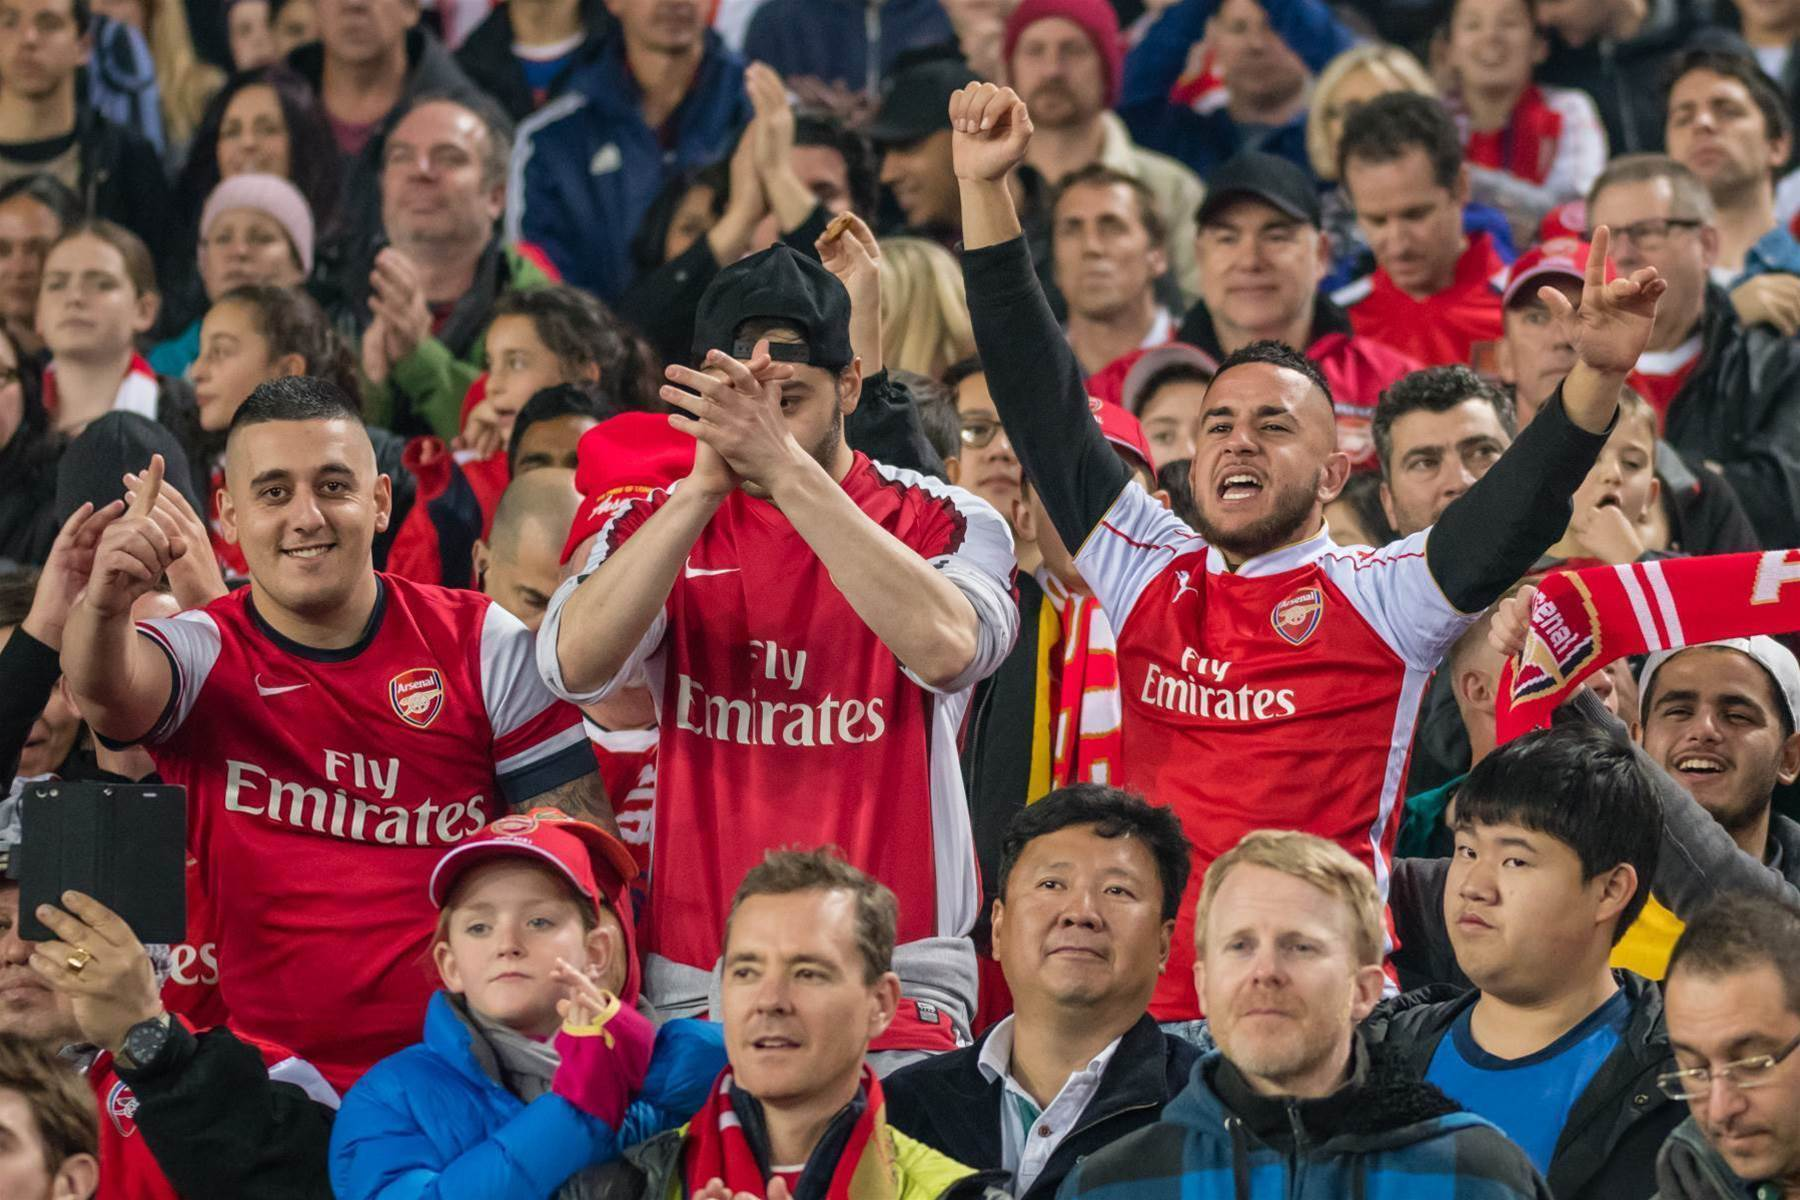 Pic special: With the fans at Arsenal vs Western Sydney Wanderers